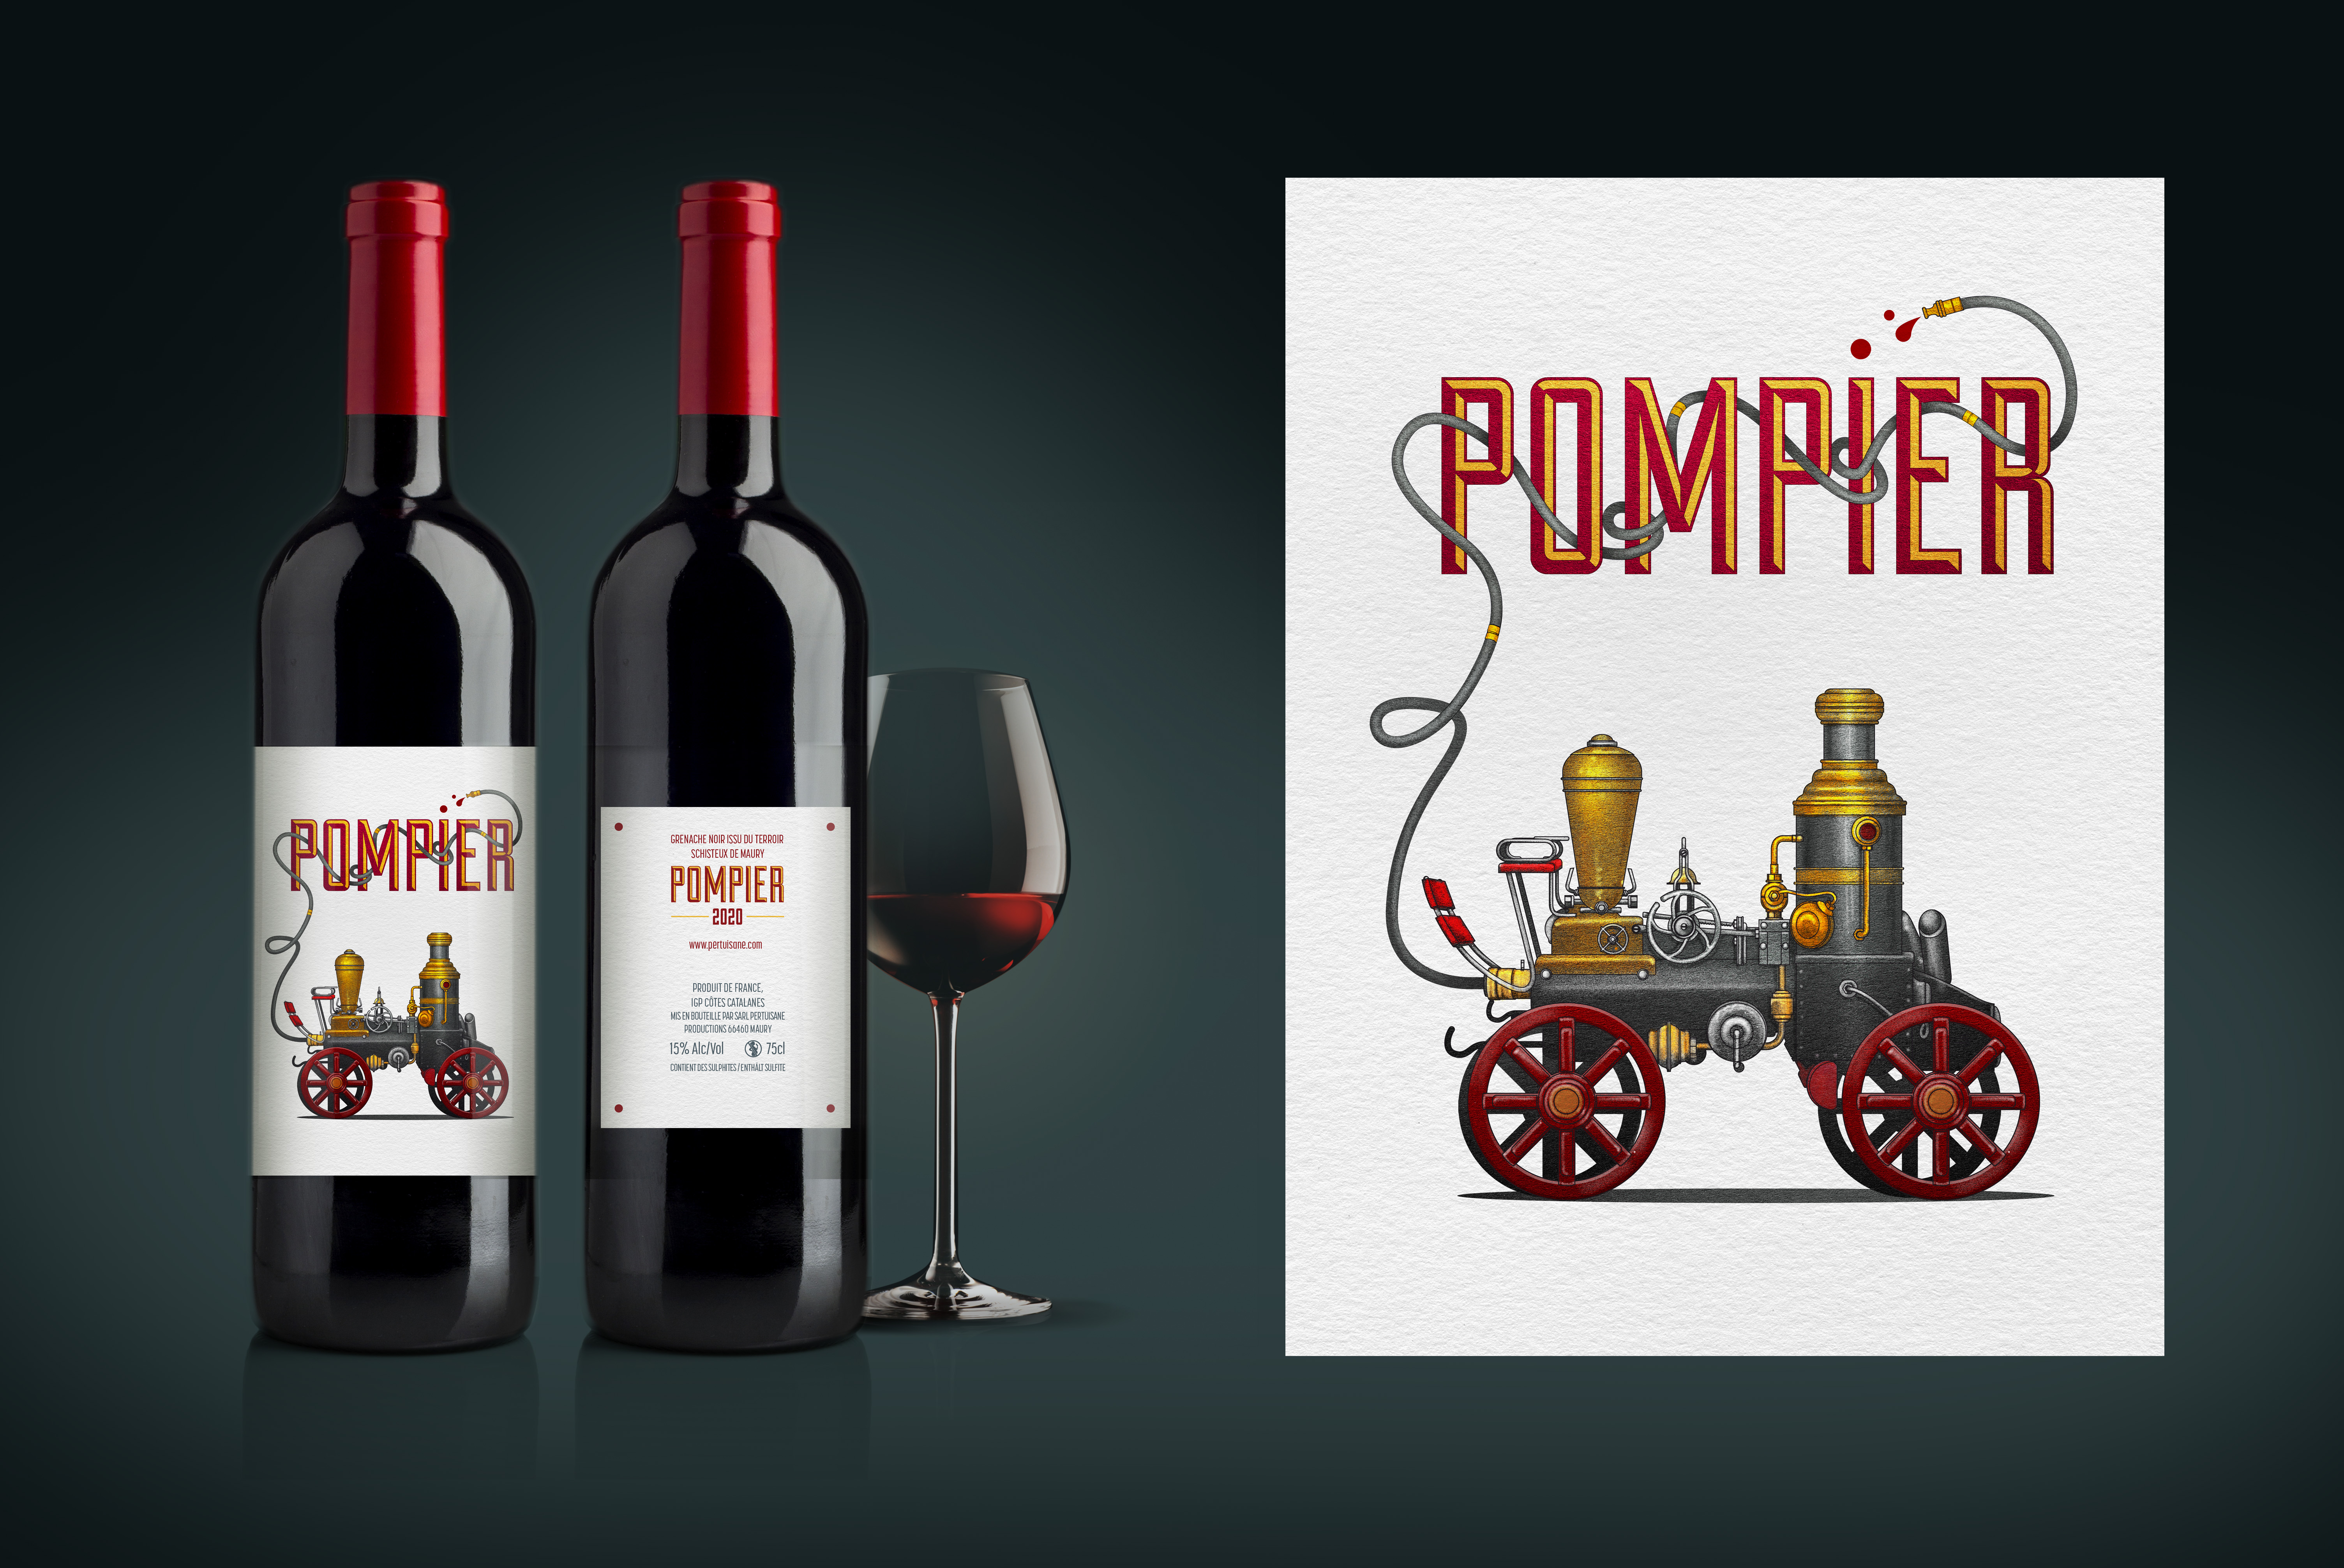 Pompier.bottle.finaldesign.3D copy